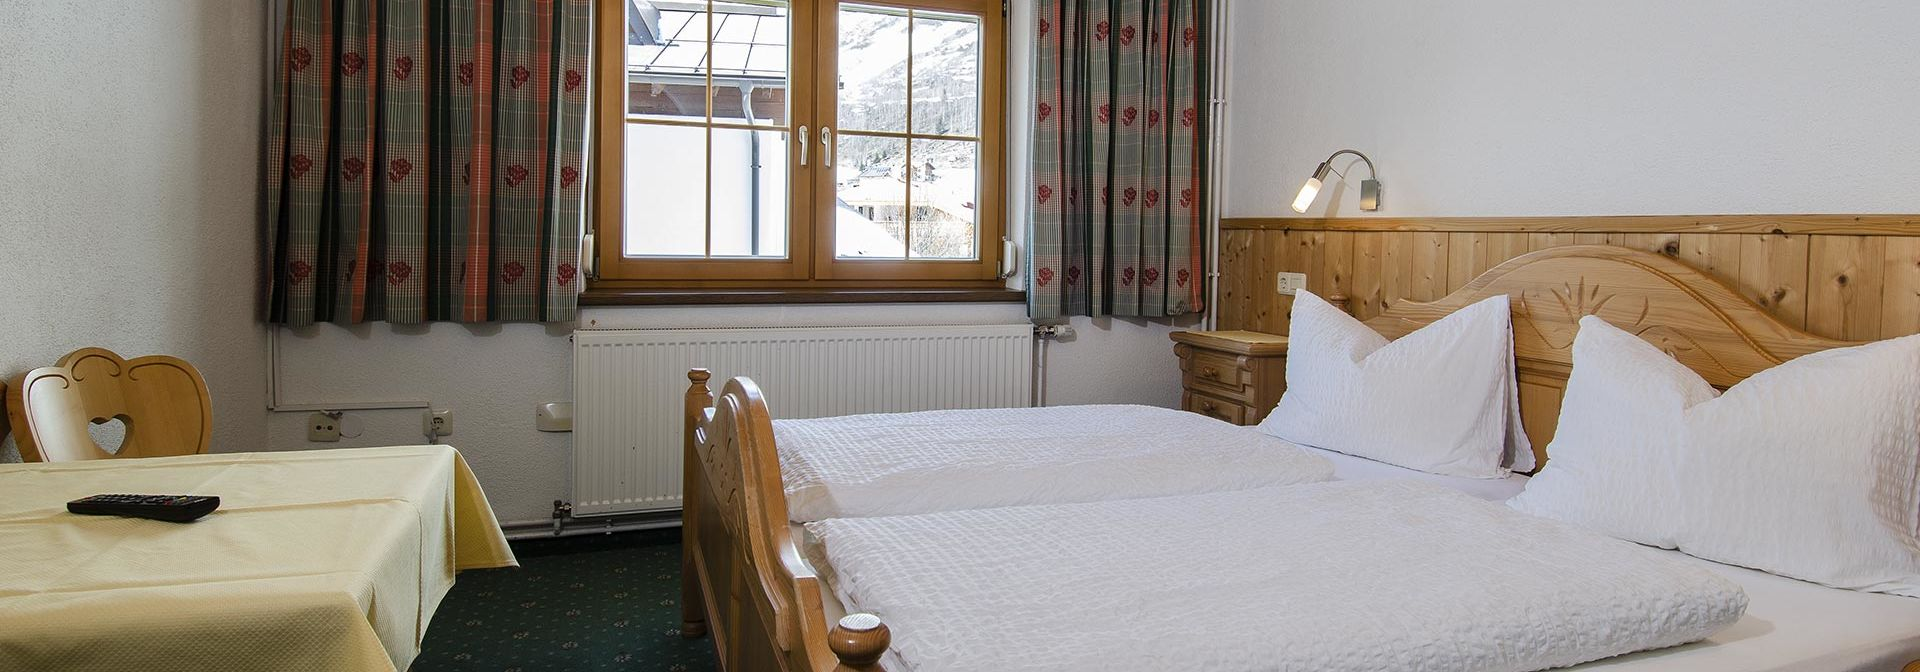 Double Room in Haus Winkl in Galtür